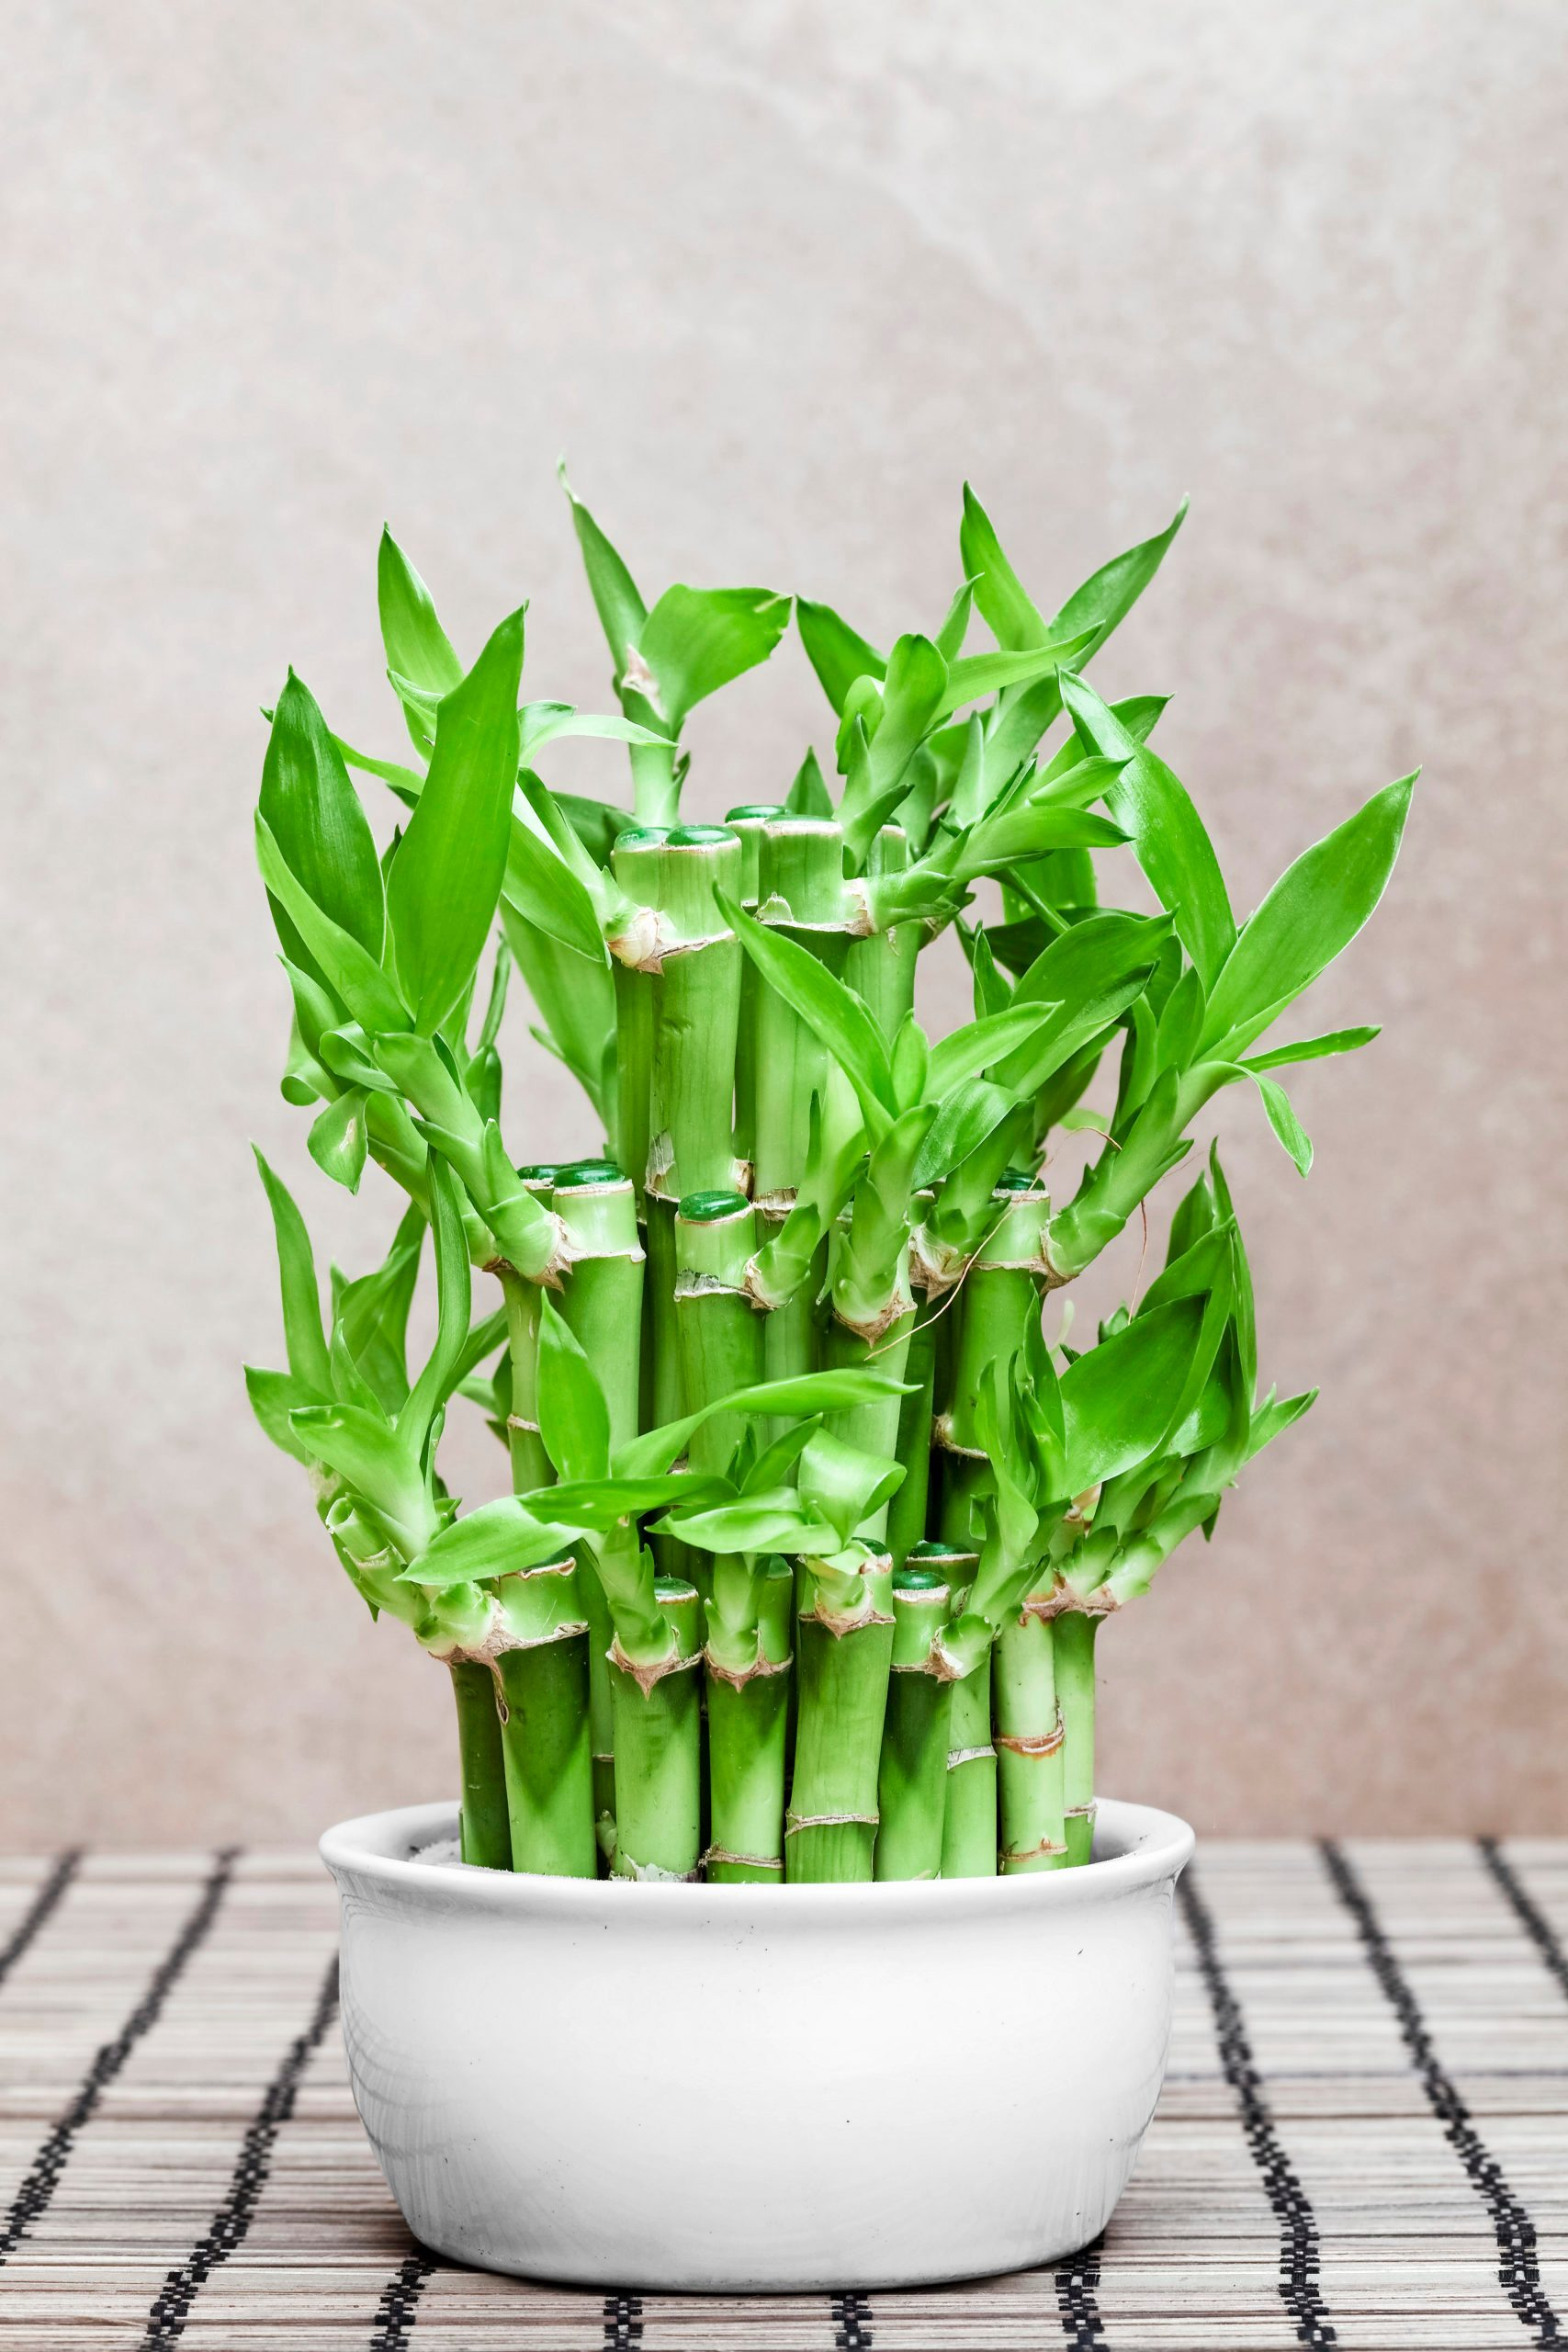 A cluster of lucky bamboo in a white pot.